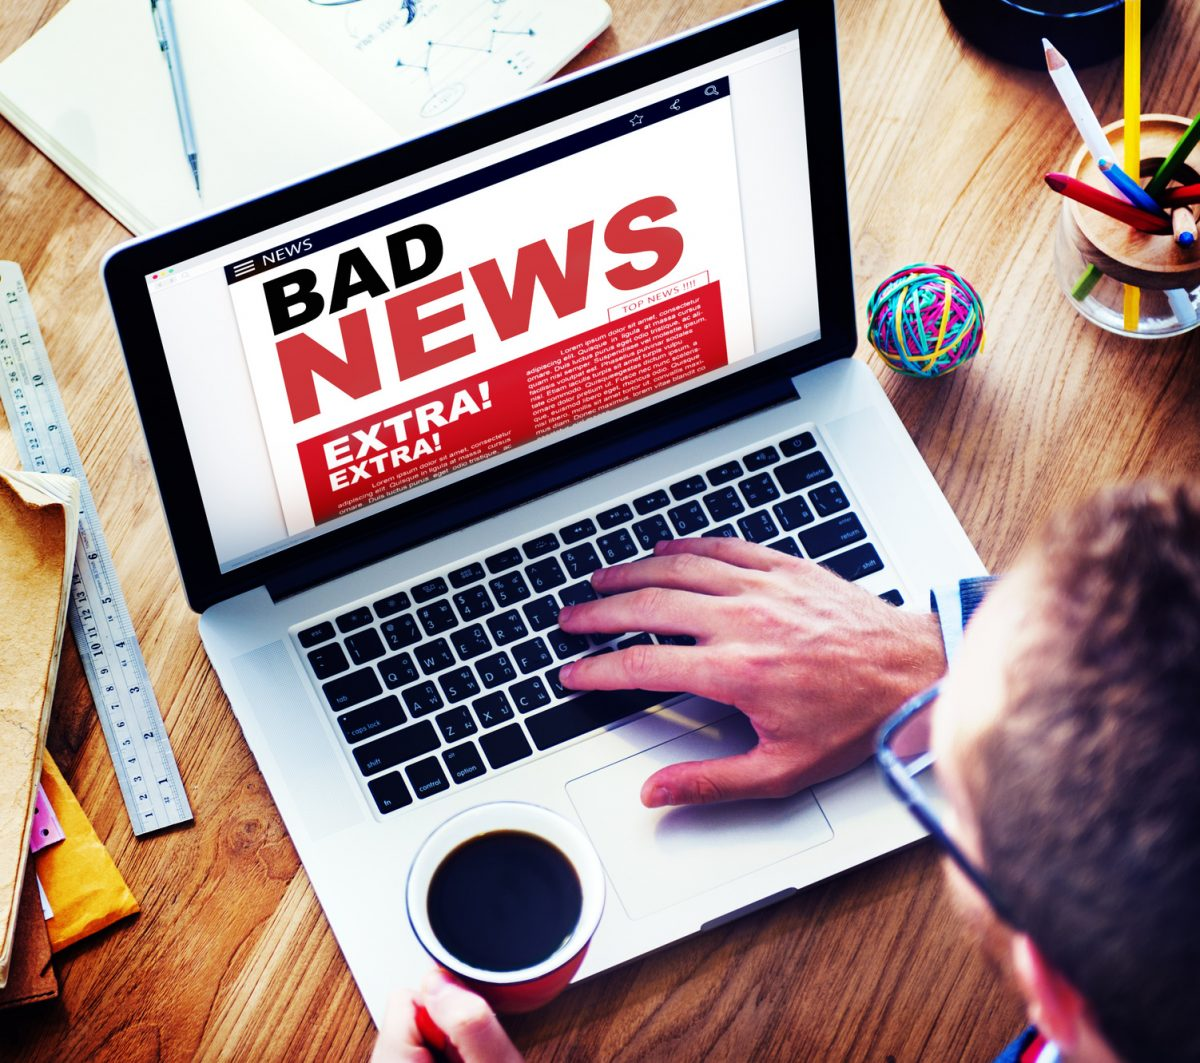 Bad News Website Play Lotto Online Safely